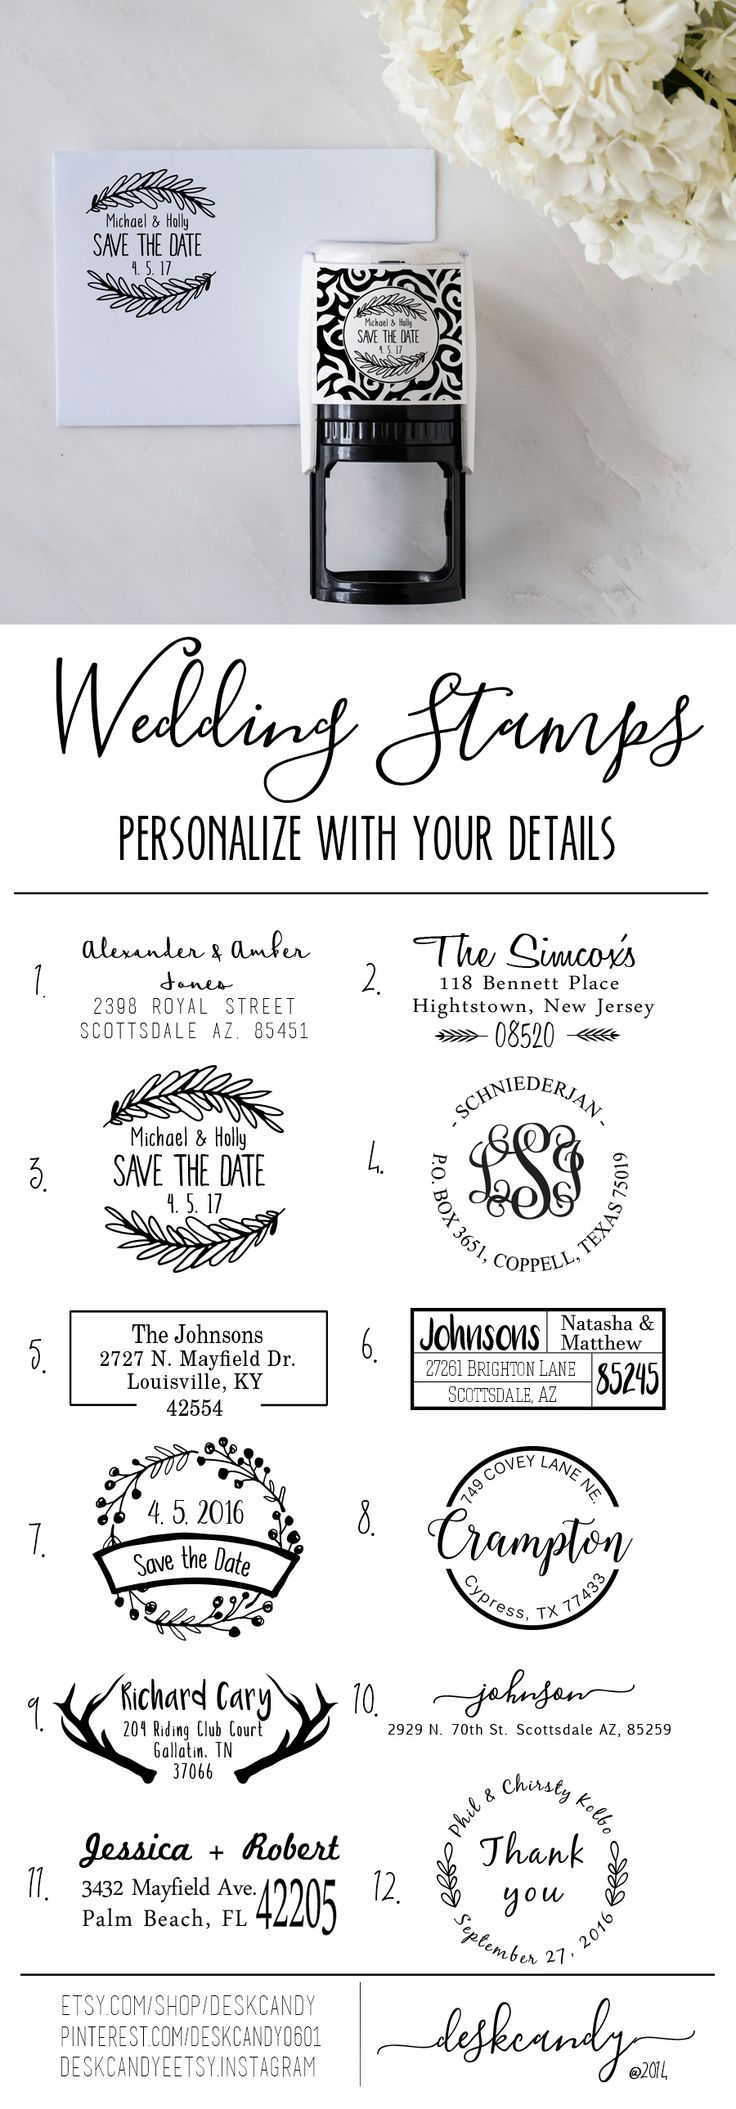 wedding stamps wedding stamps Rustic Wedding Stamp Wreath Wedding Address Stamp Wreath Address Stamp Self Inking Address Stamp Wedding Invitaitons Personalized Stamp